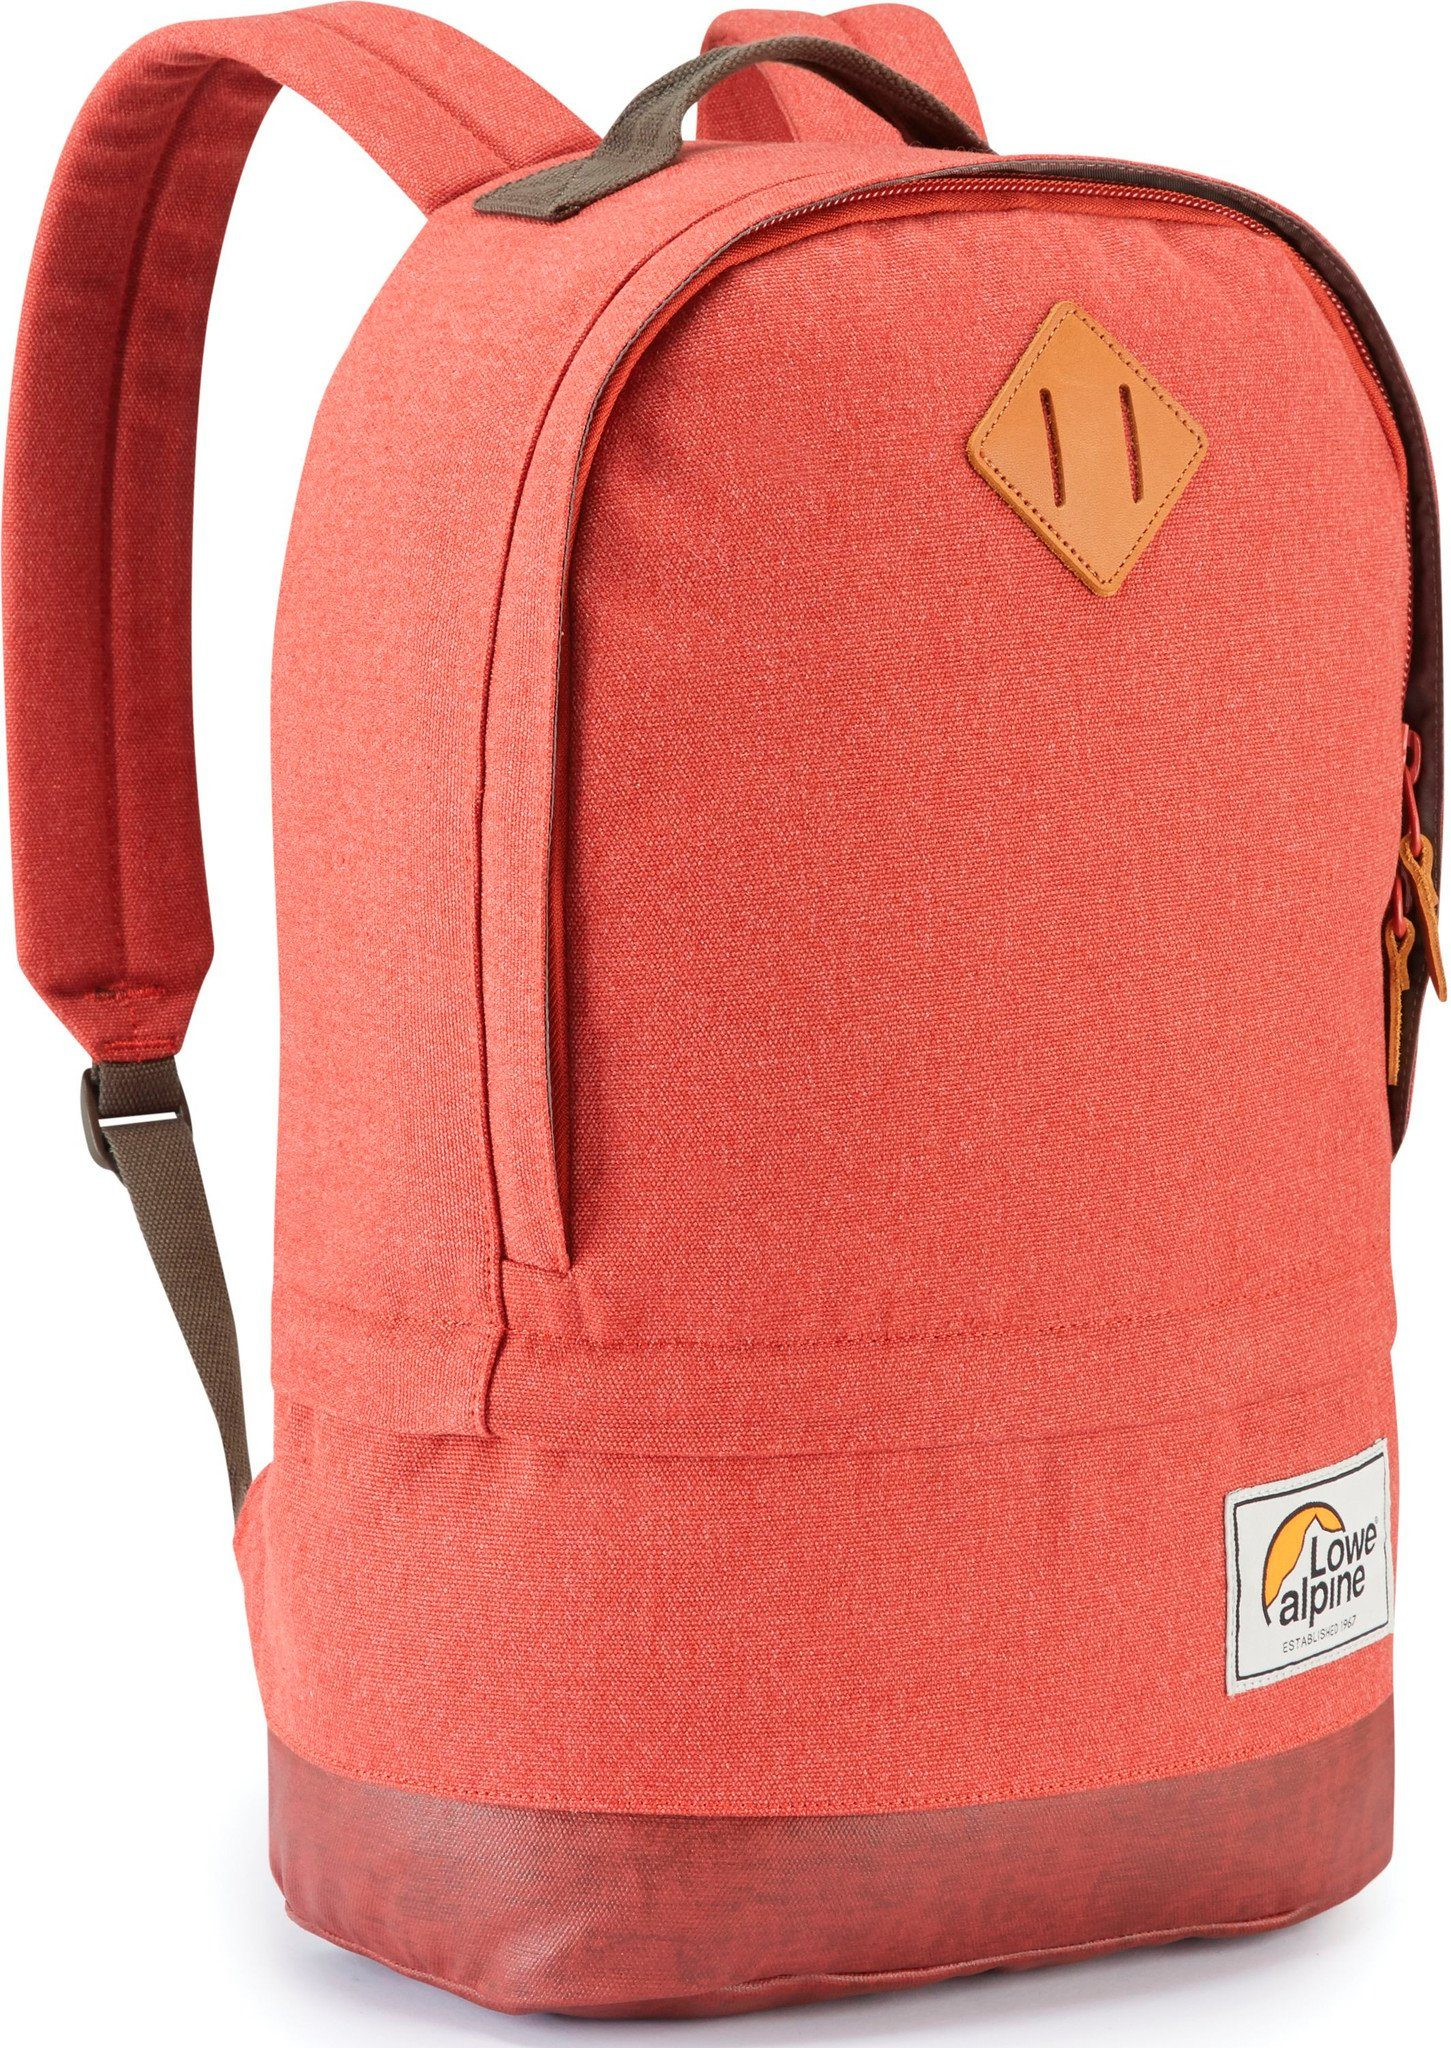 Lowe Alpine Wanderrucksack »Guide 25 Backpack Unisex«